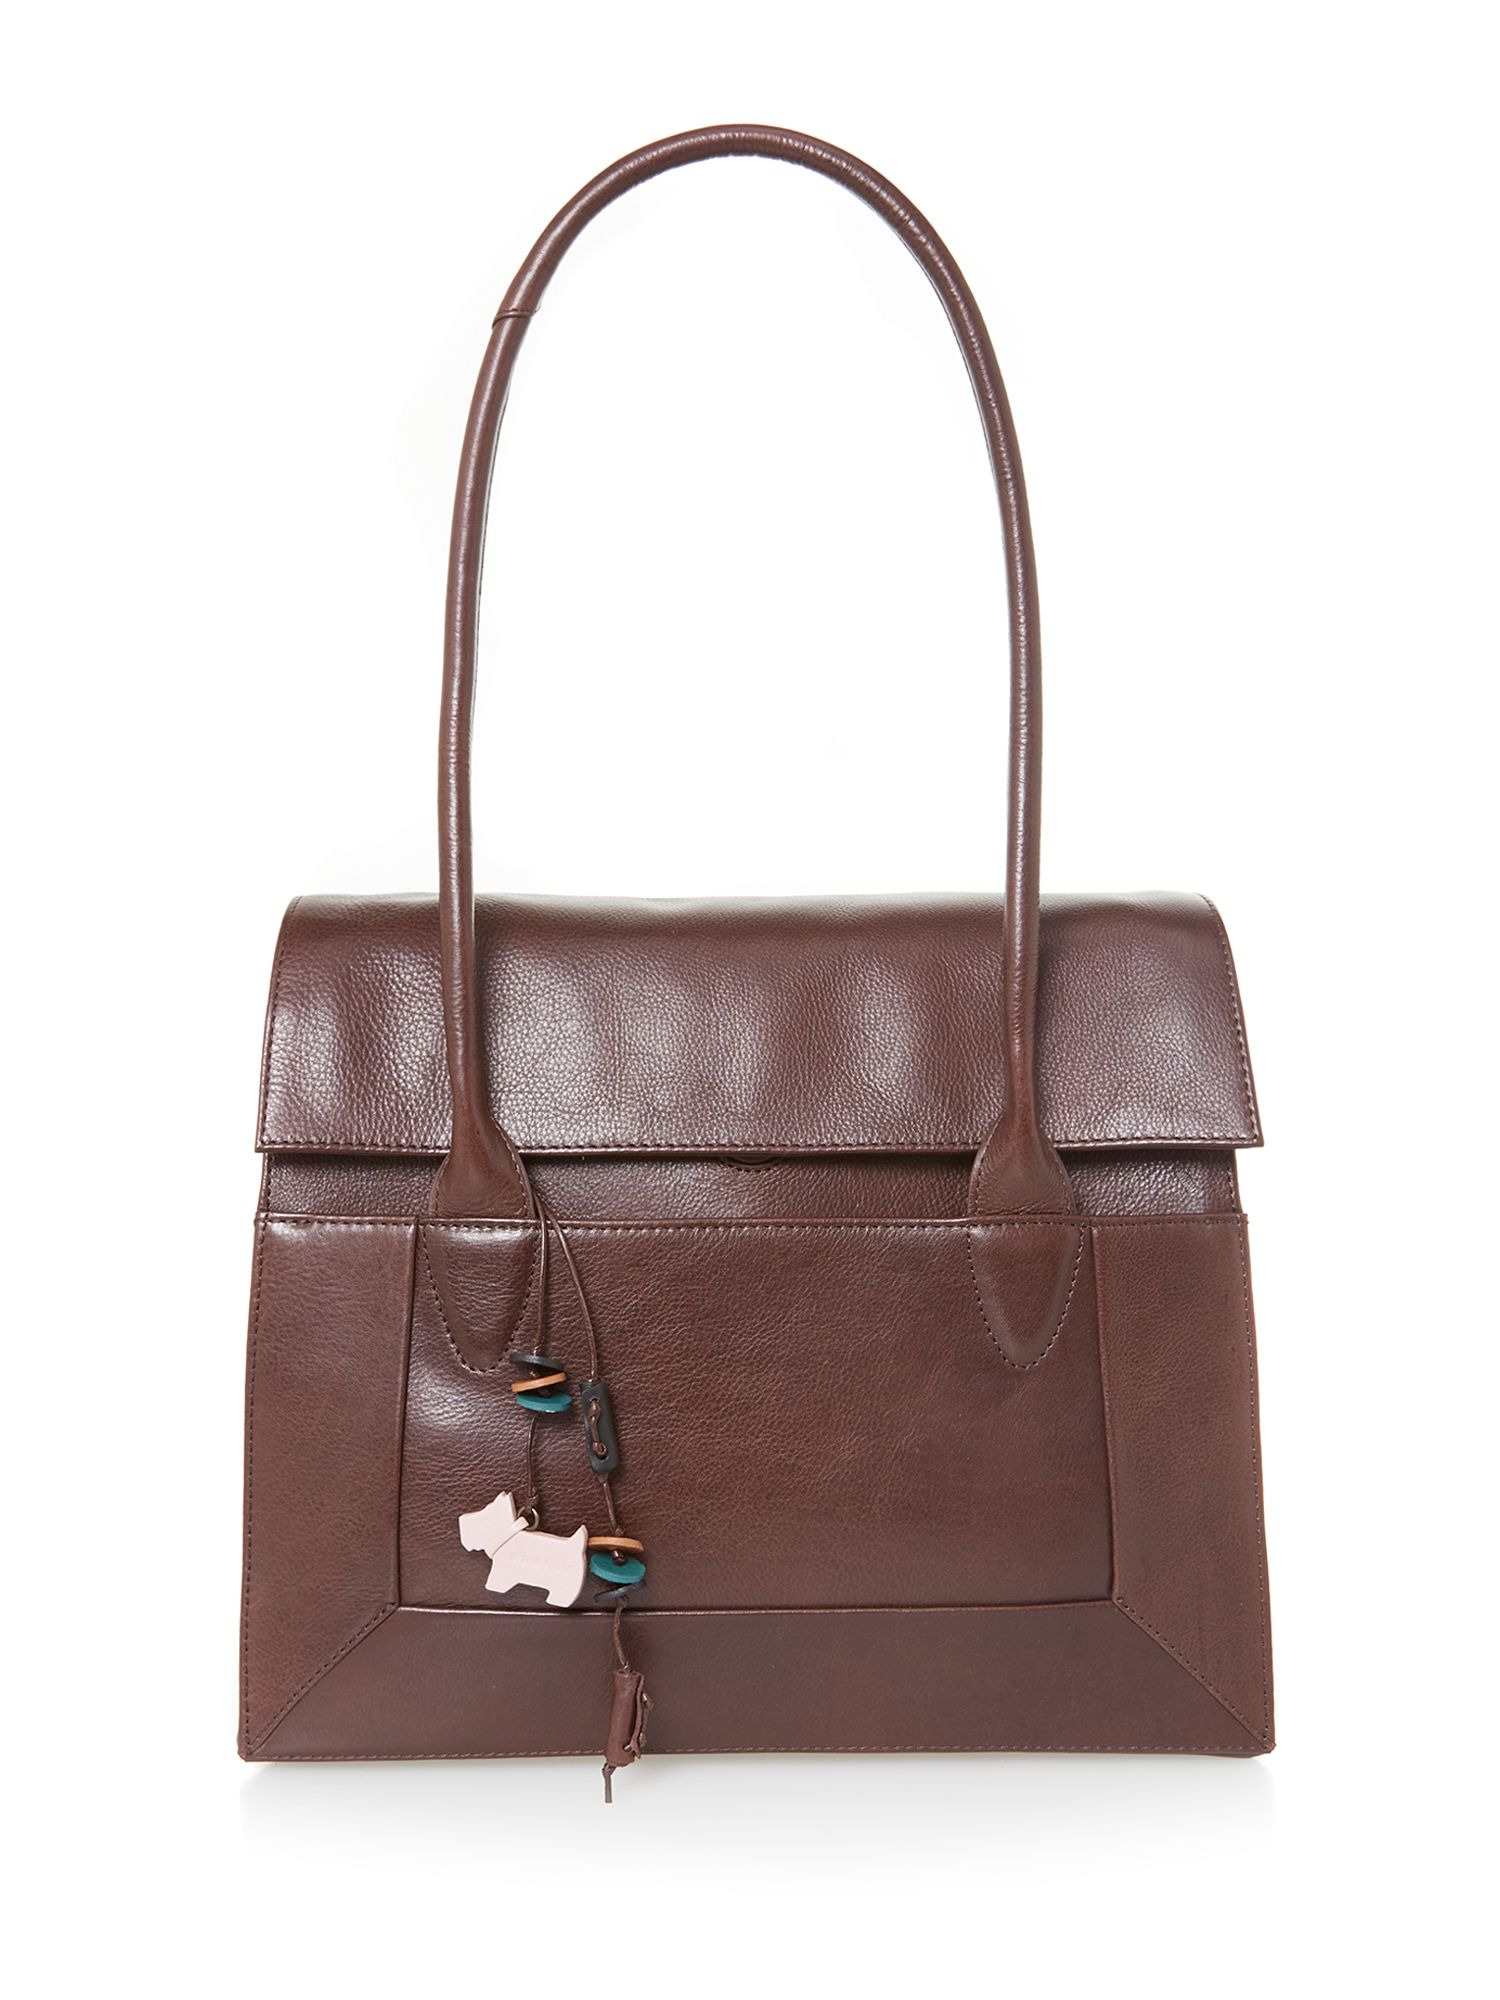 Border large brown flapover tote bag